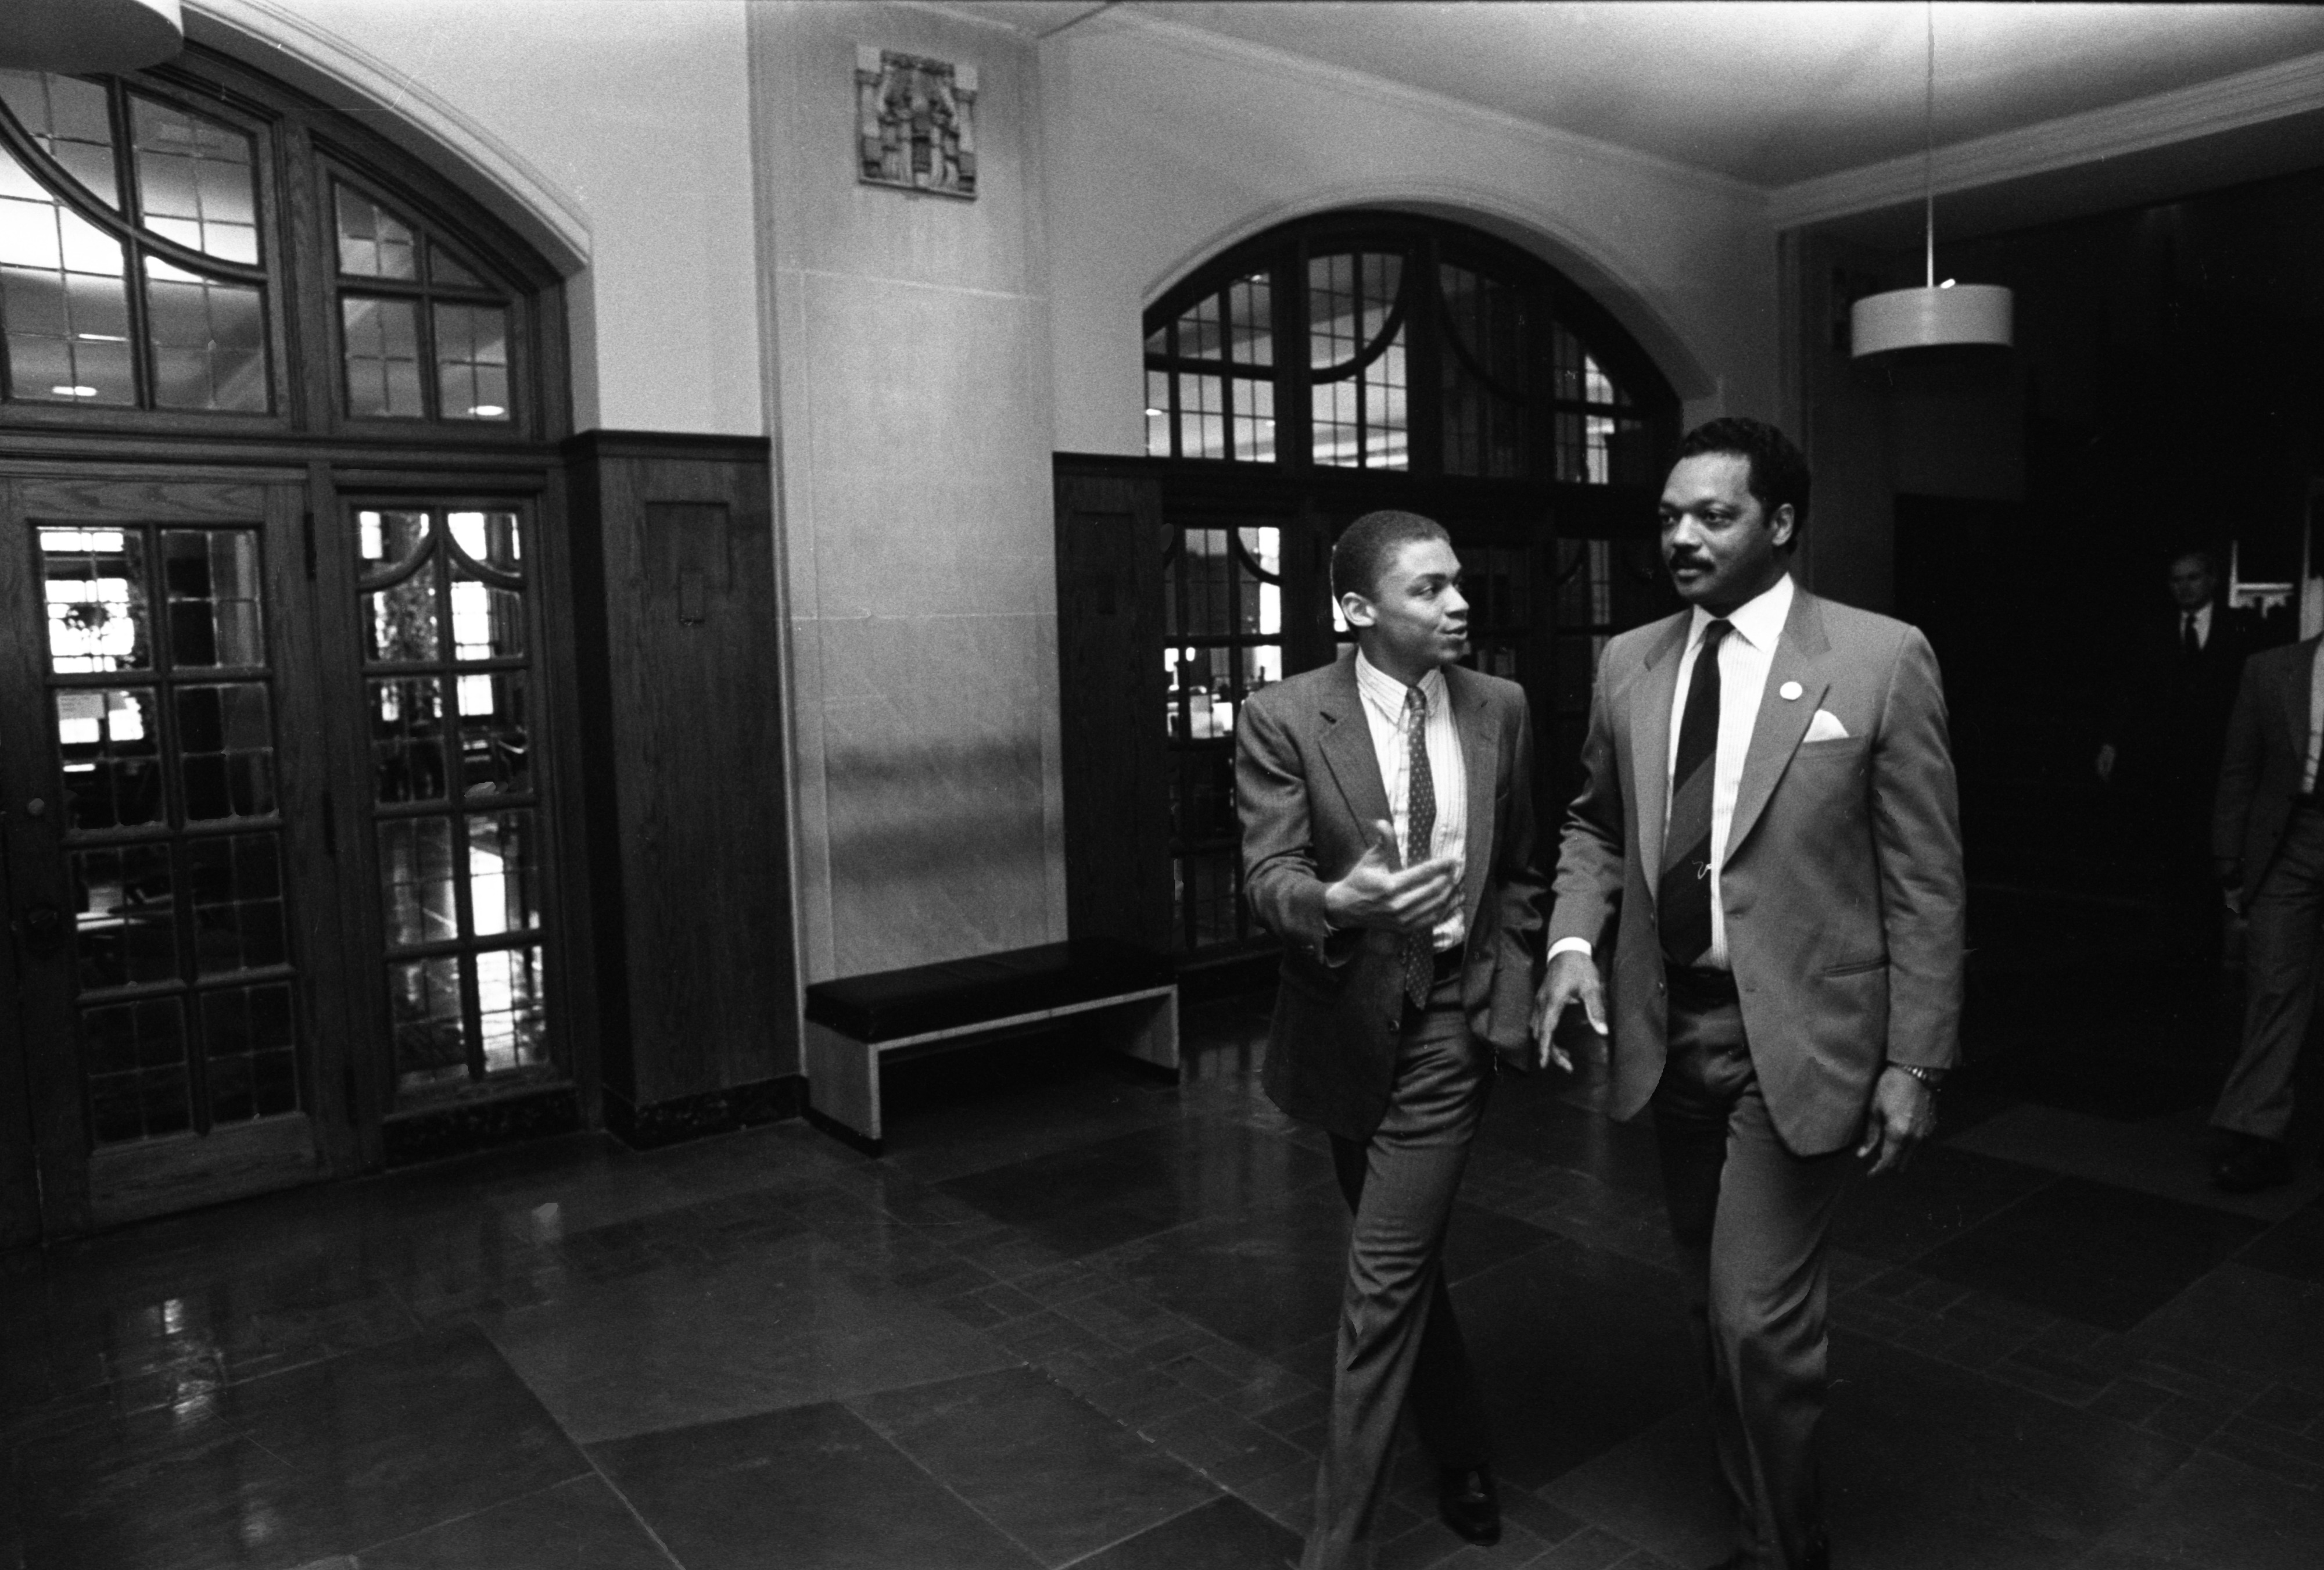 Black Action Movement leader, Charles Wynder With The Rev. Jesse Jackson, March 23, 1987 image